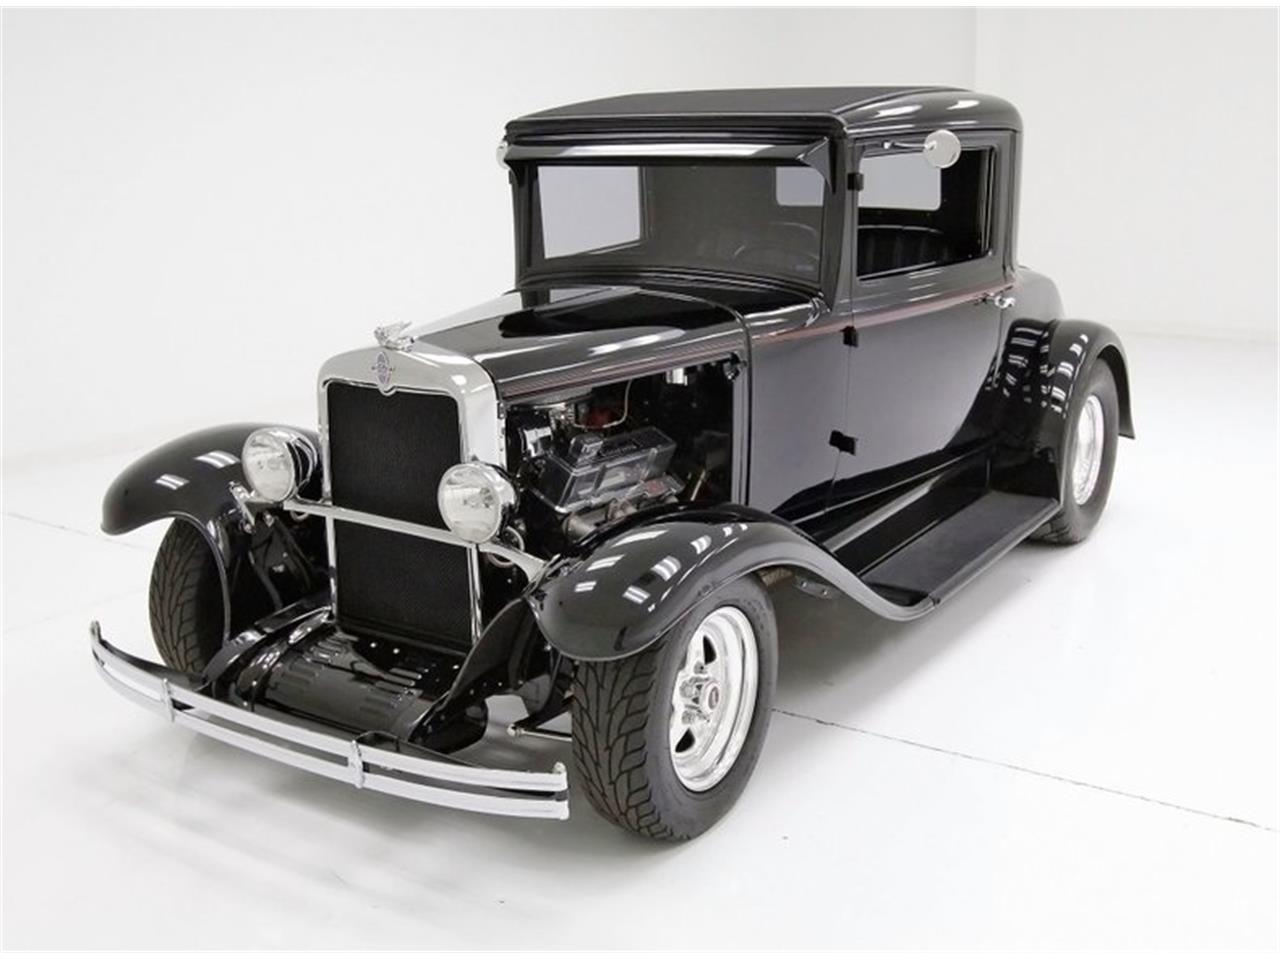 1930 Chevrolet 3-Window Coupe for sale in Morgantown, PA